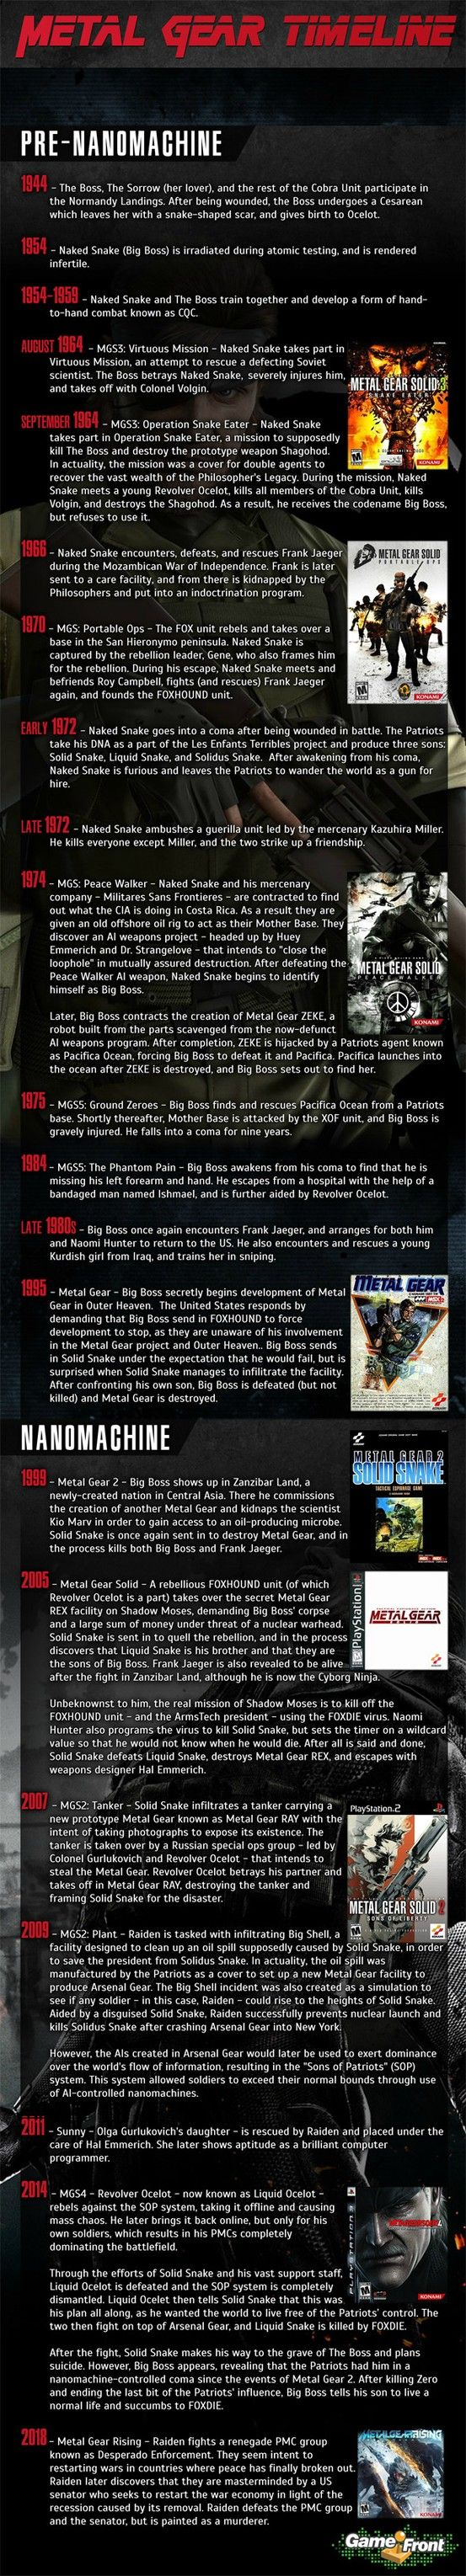 MGS Timeline (for future reference!) 『 Metal Gear Solid 』